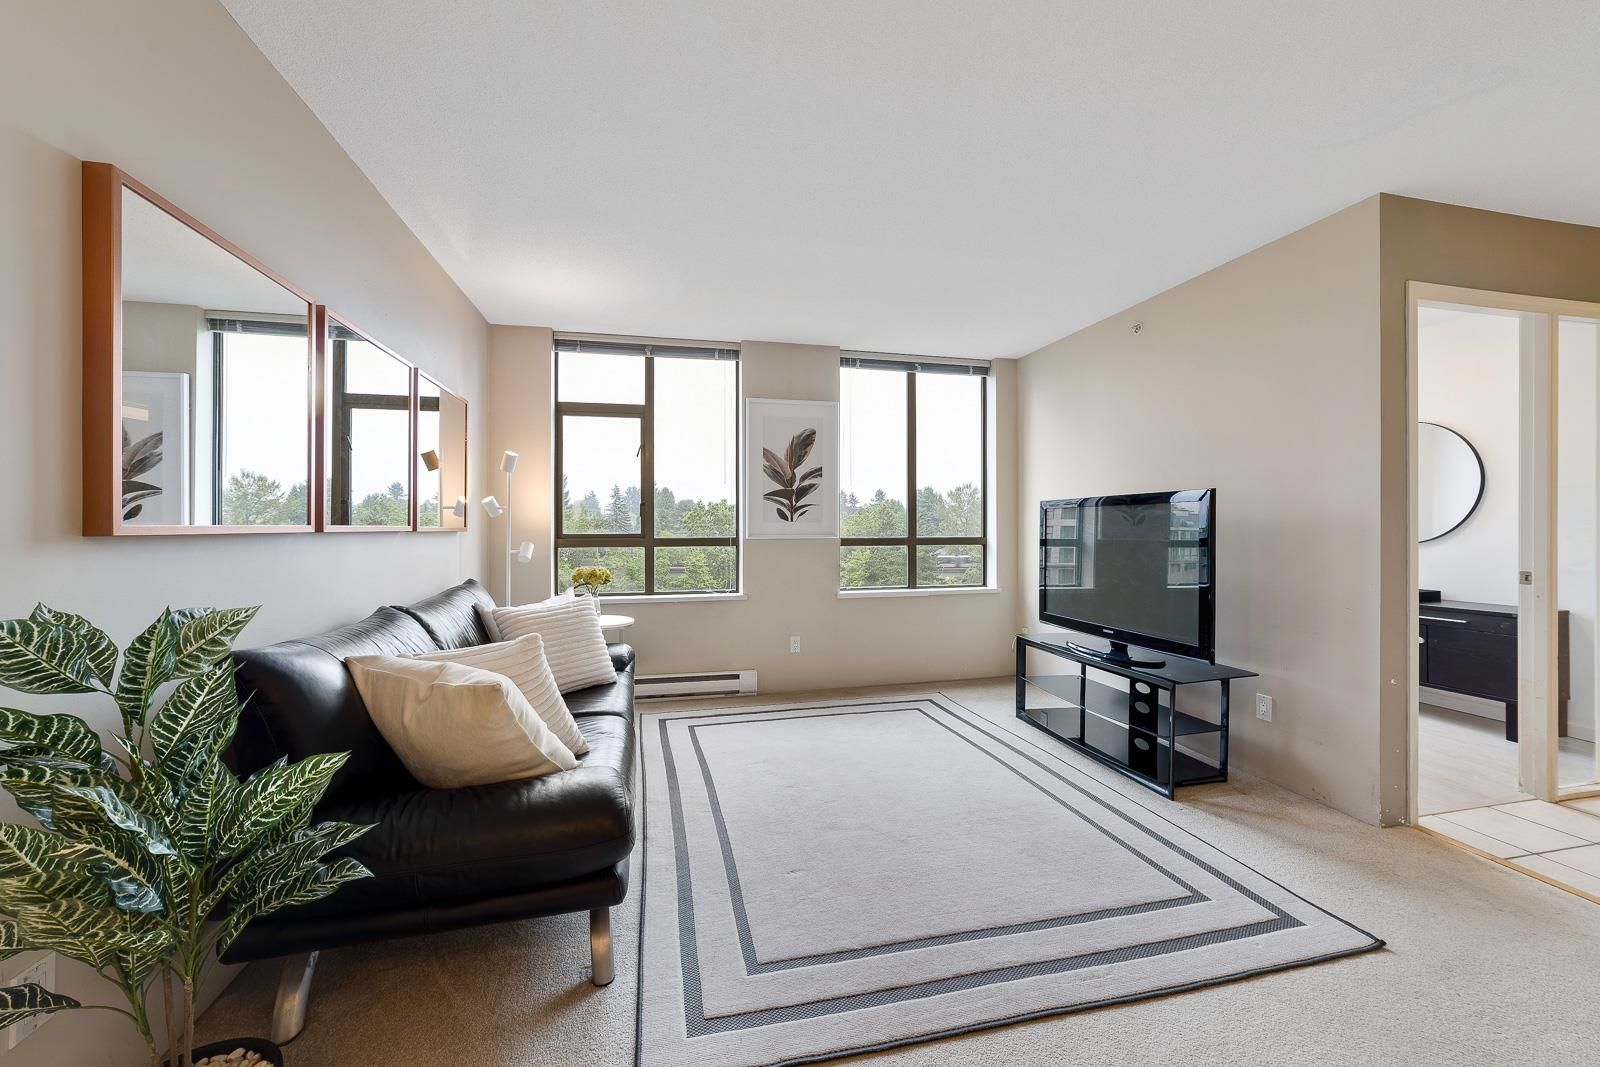 """Main Photo: 706 3520 CROWLEY Drive in Vancouver: Collingwood VE Condo for sale in """"Millenio"""" (Vancouver East)  : MLS®# R2617319"""